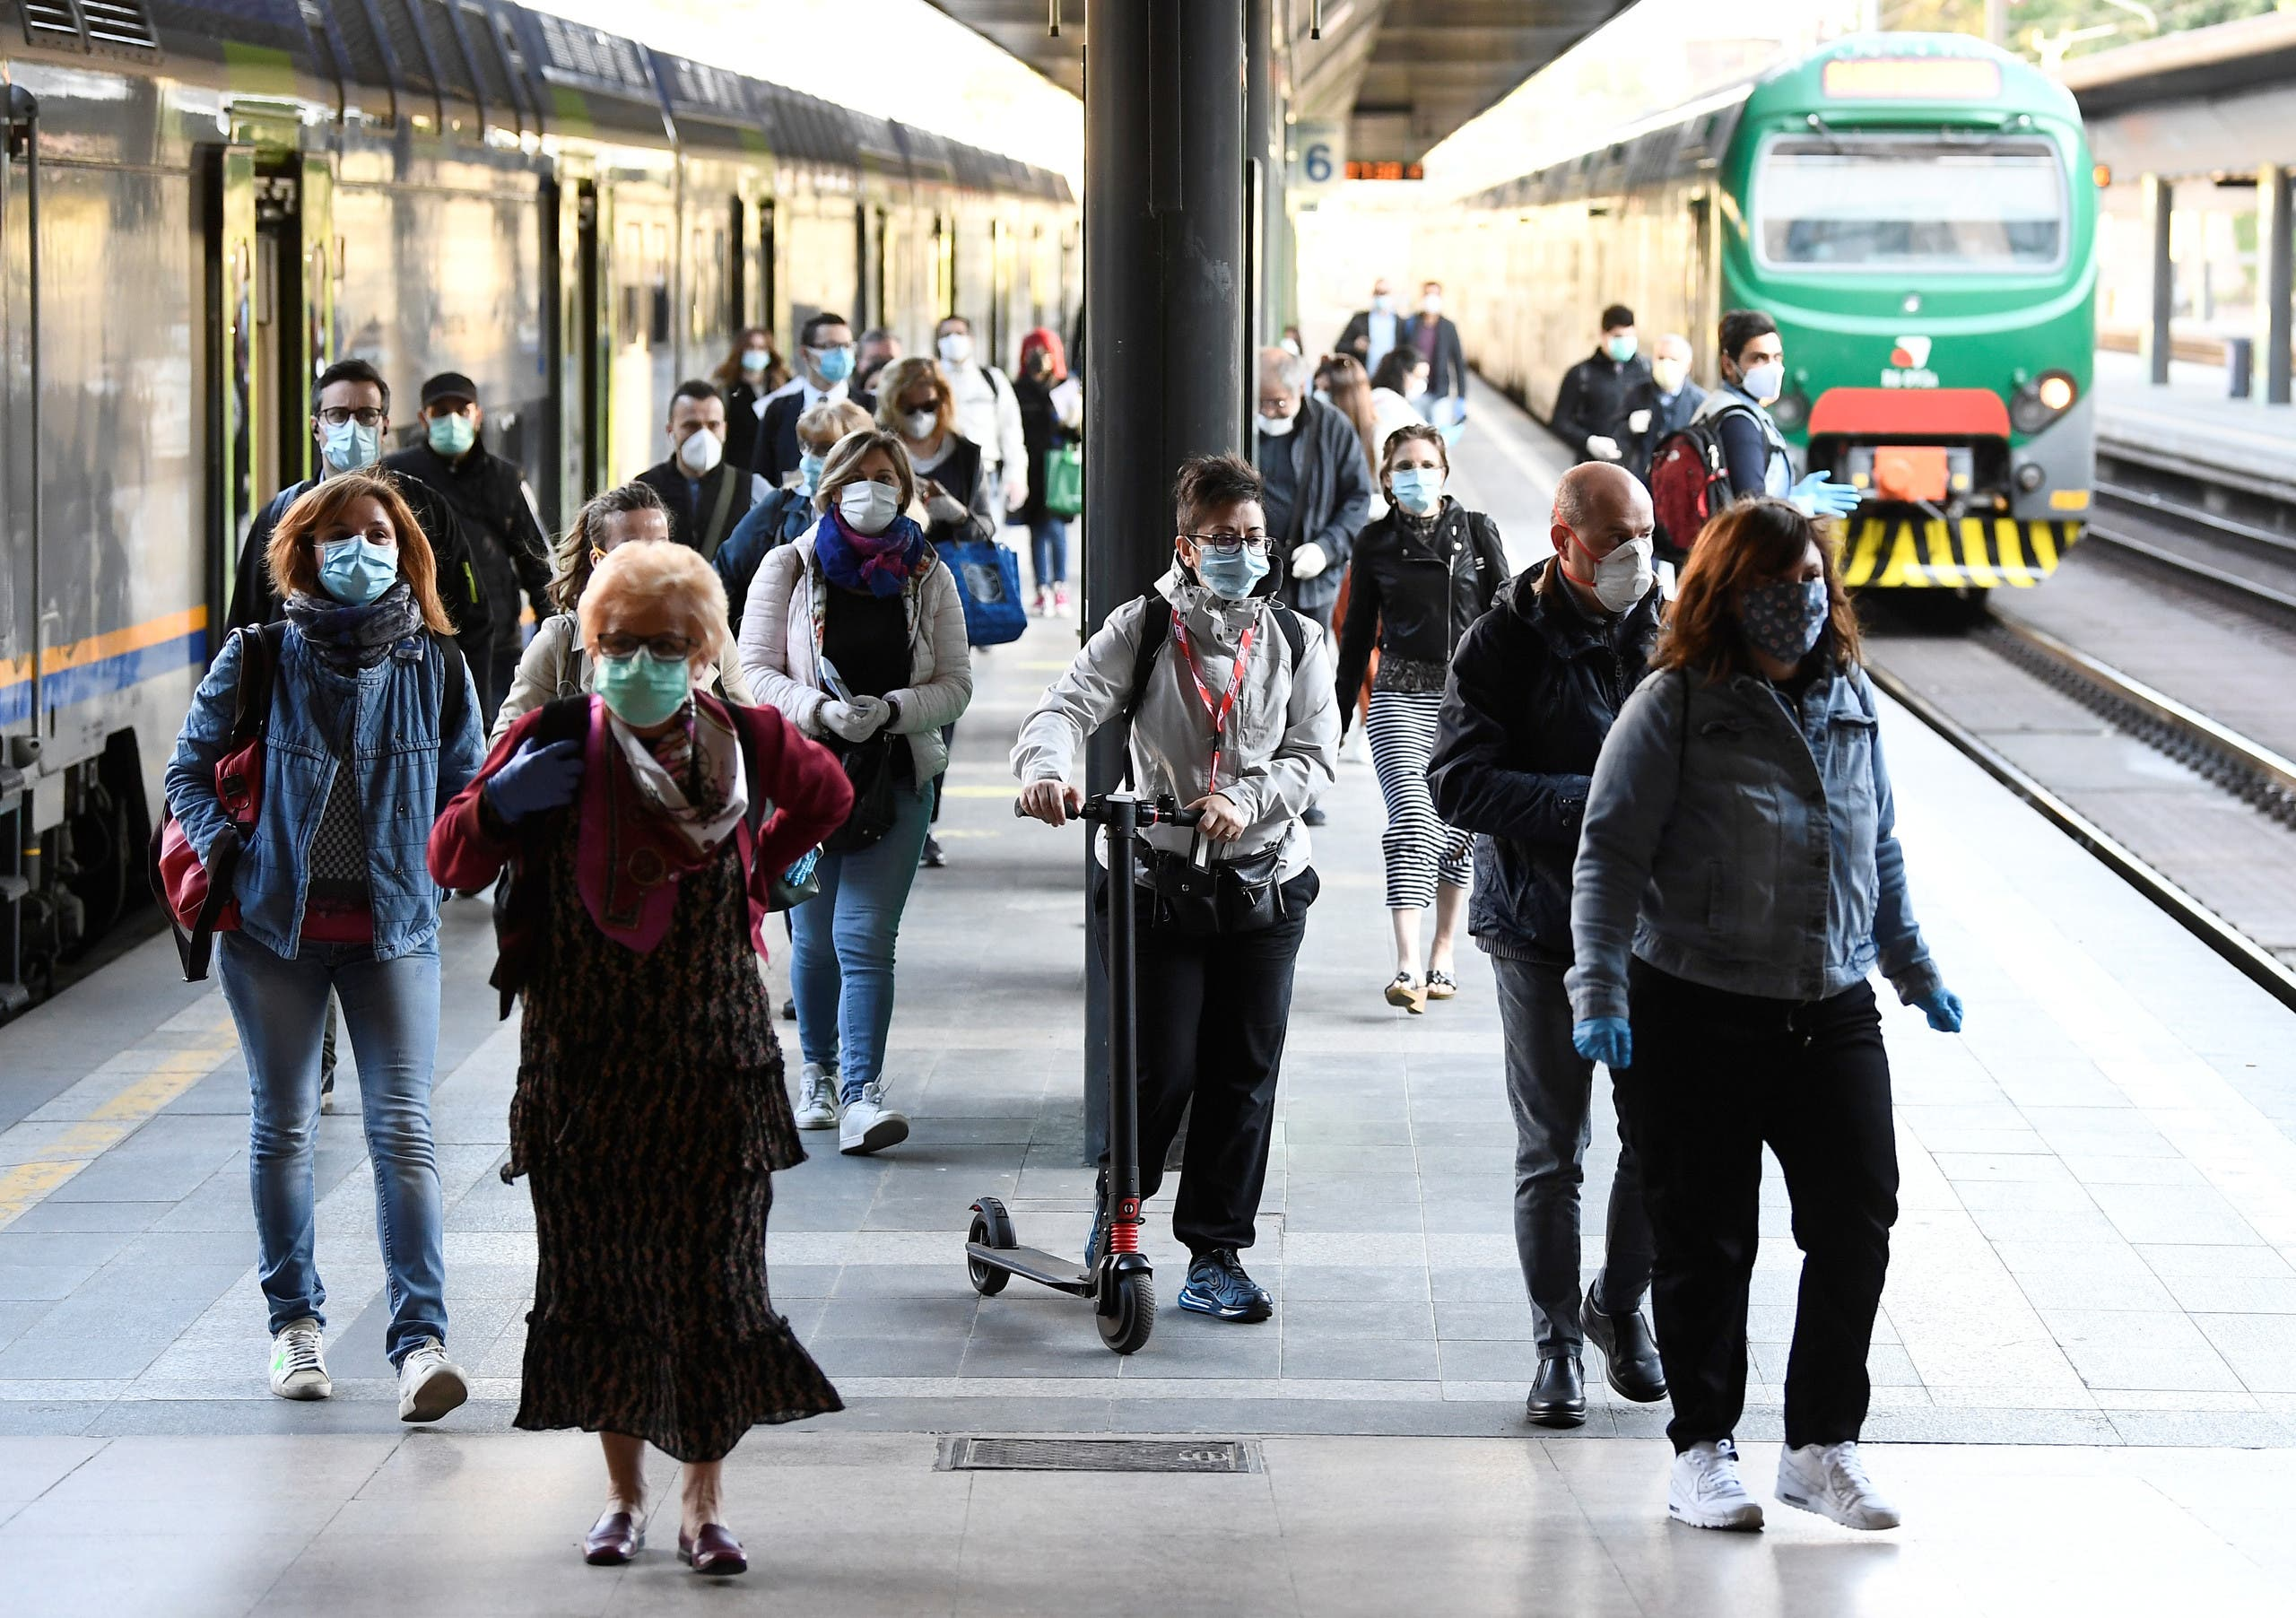 People wearing face masks arrive at the Cadorna railway station, as Italy begins a staged end to a nationwide lockdown due to the spread of the coronavirus, in Milan, Italy, on May 4, 2020. (Reuters)